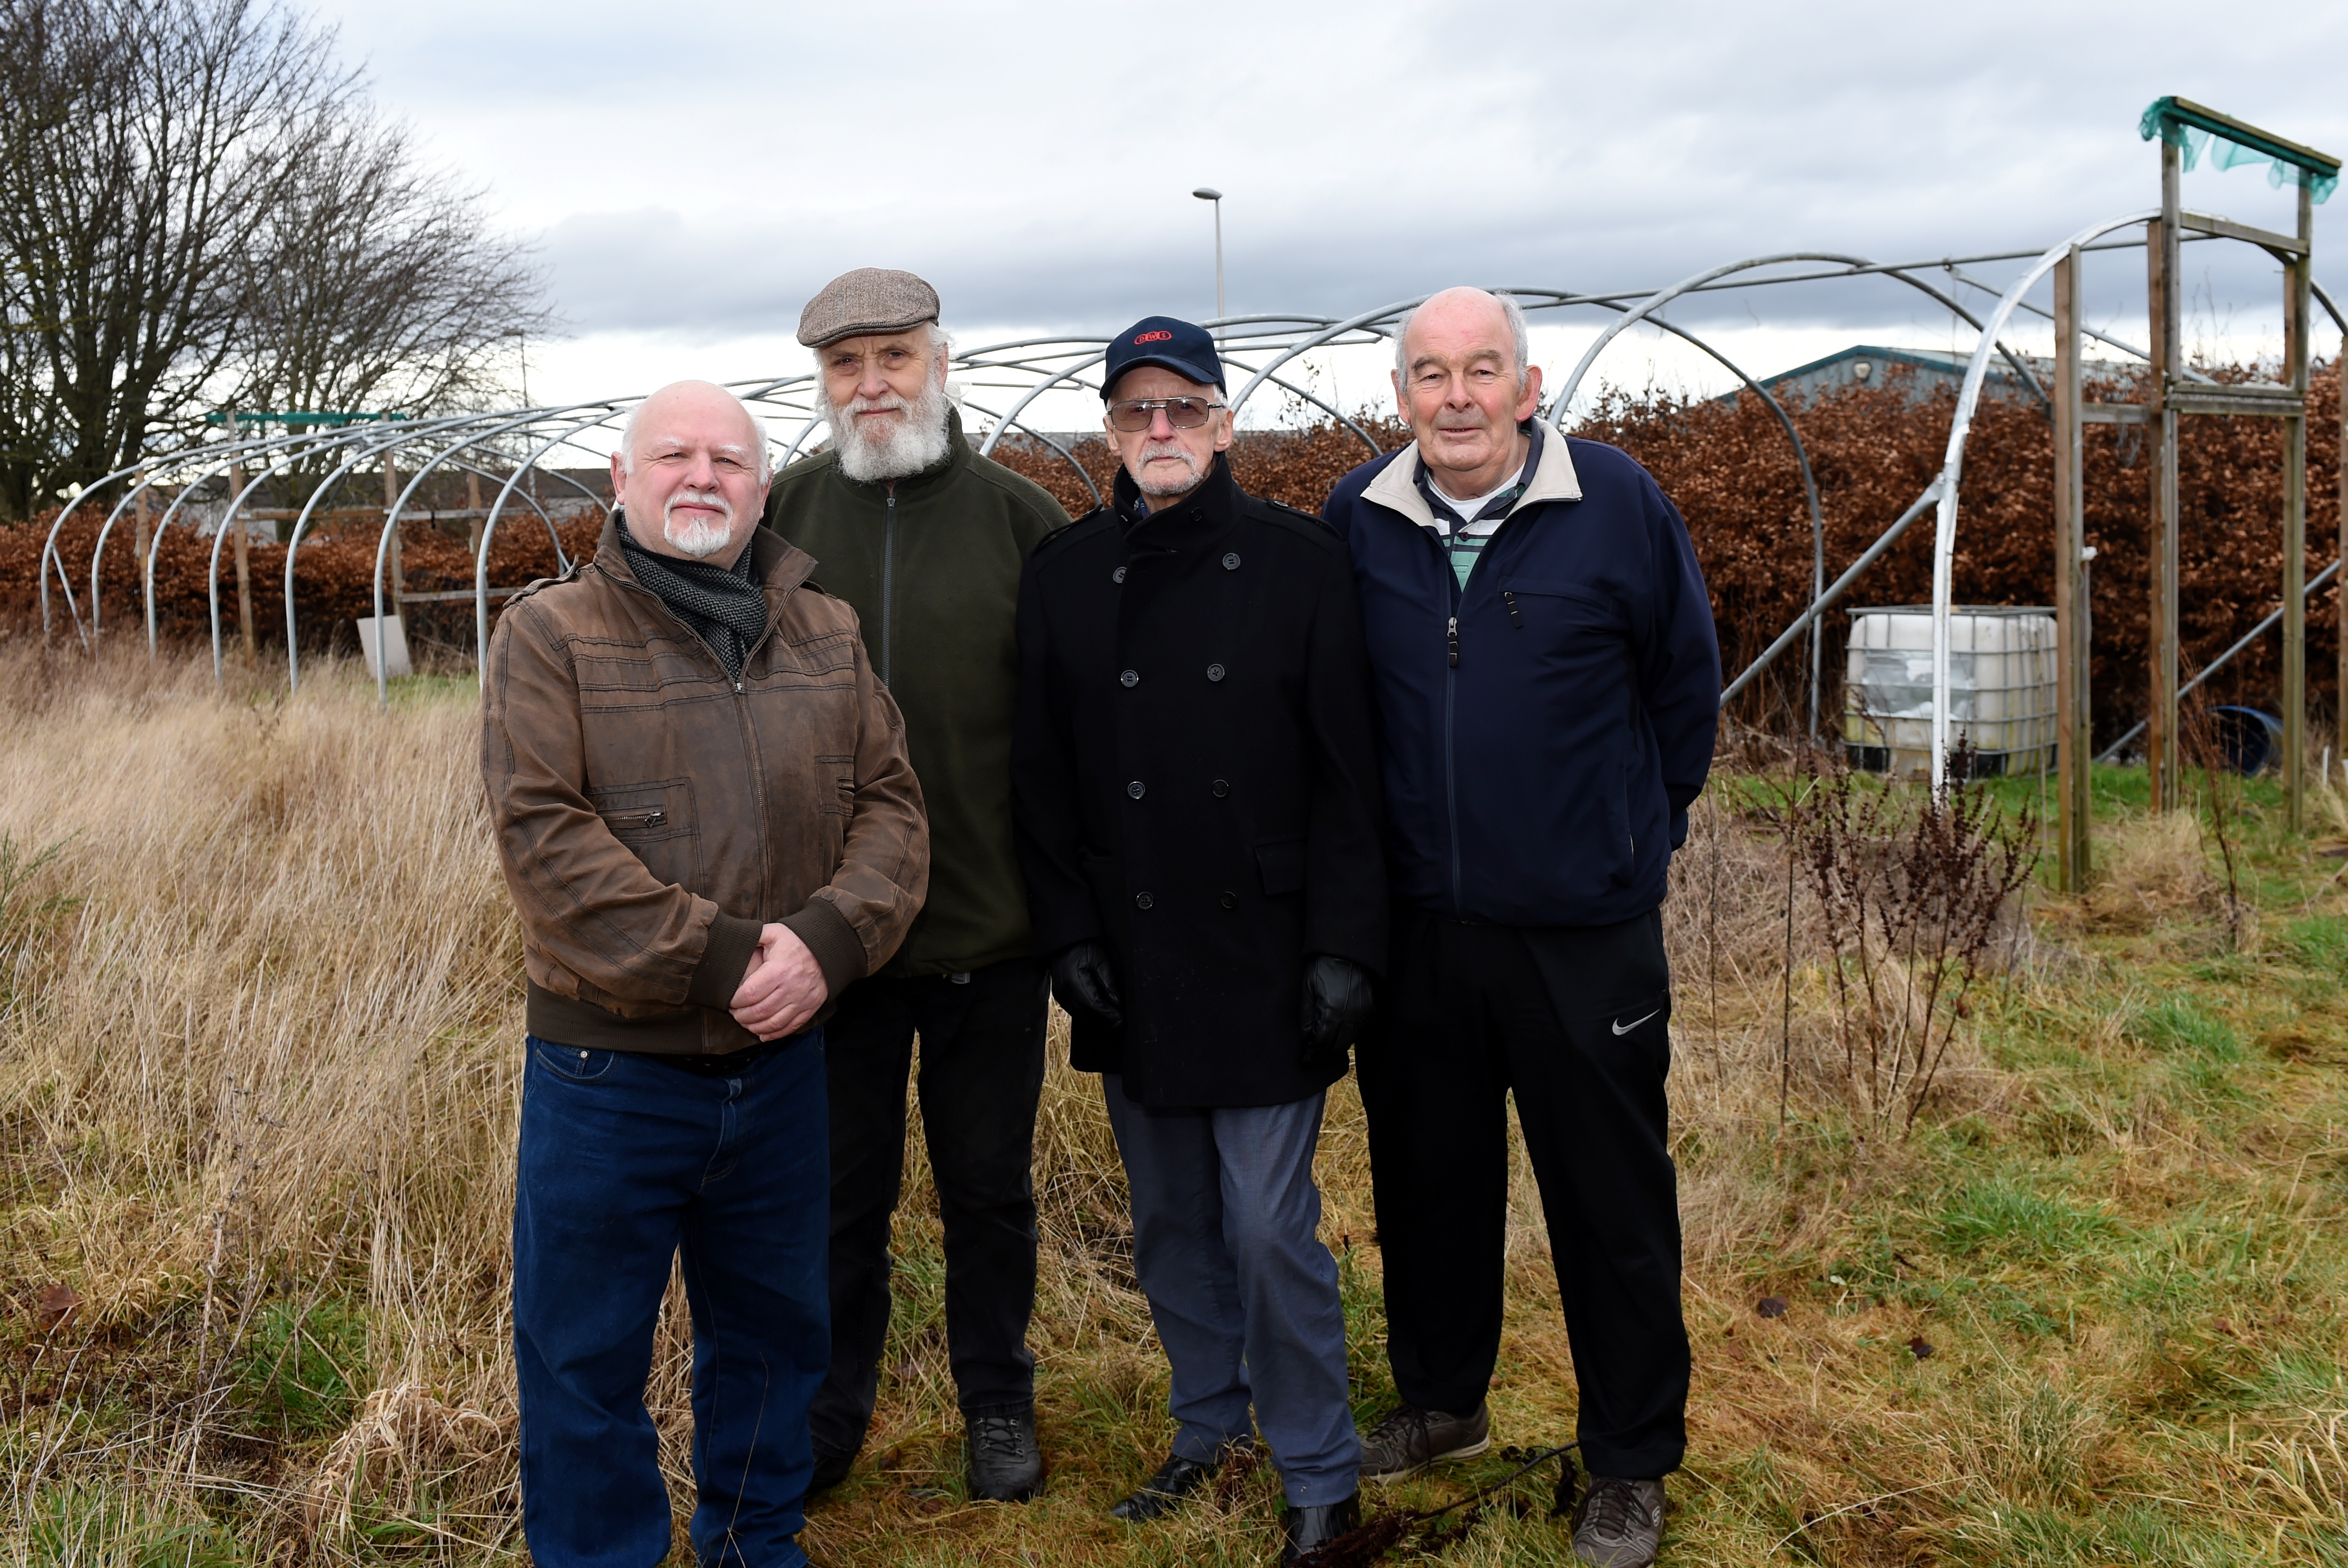 L-R: Archie Peebles, Leith Robertson, Jim Smith, Alex Smith posing at the existing site.  Picture by Caledonia Jeffrey